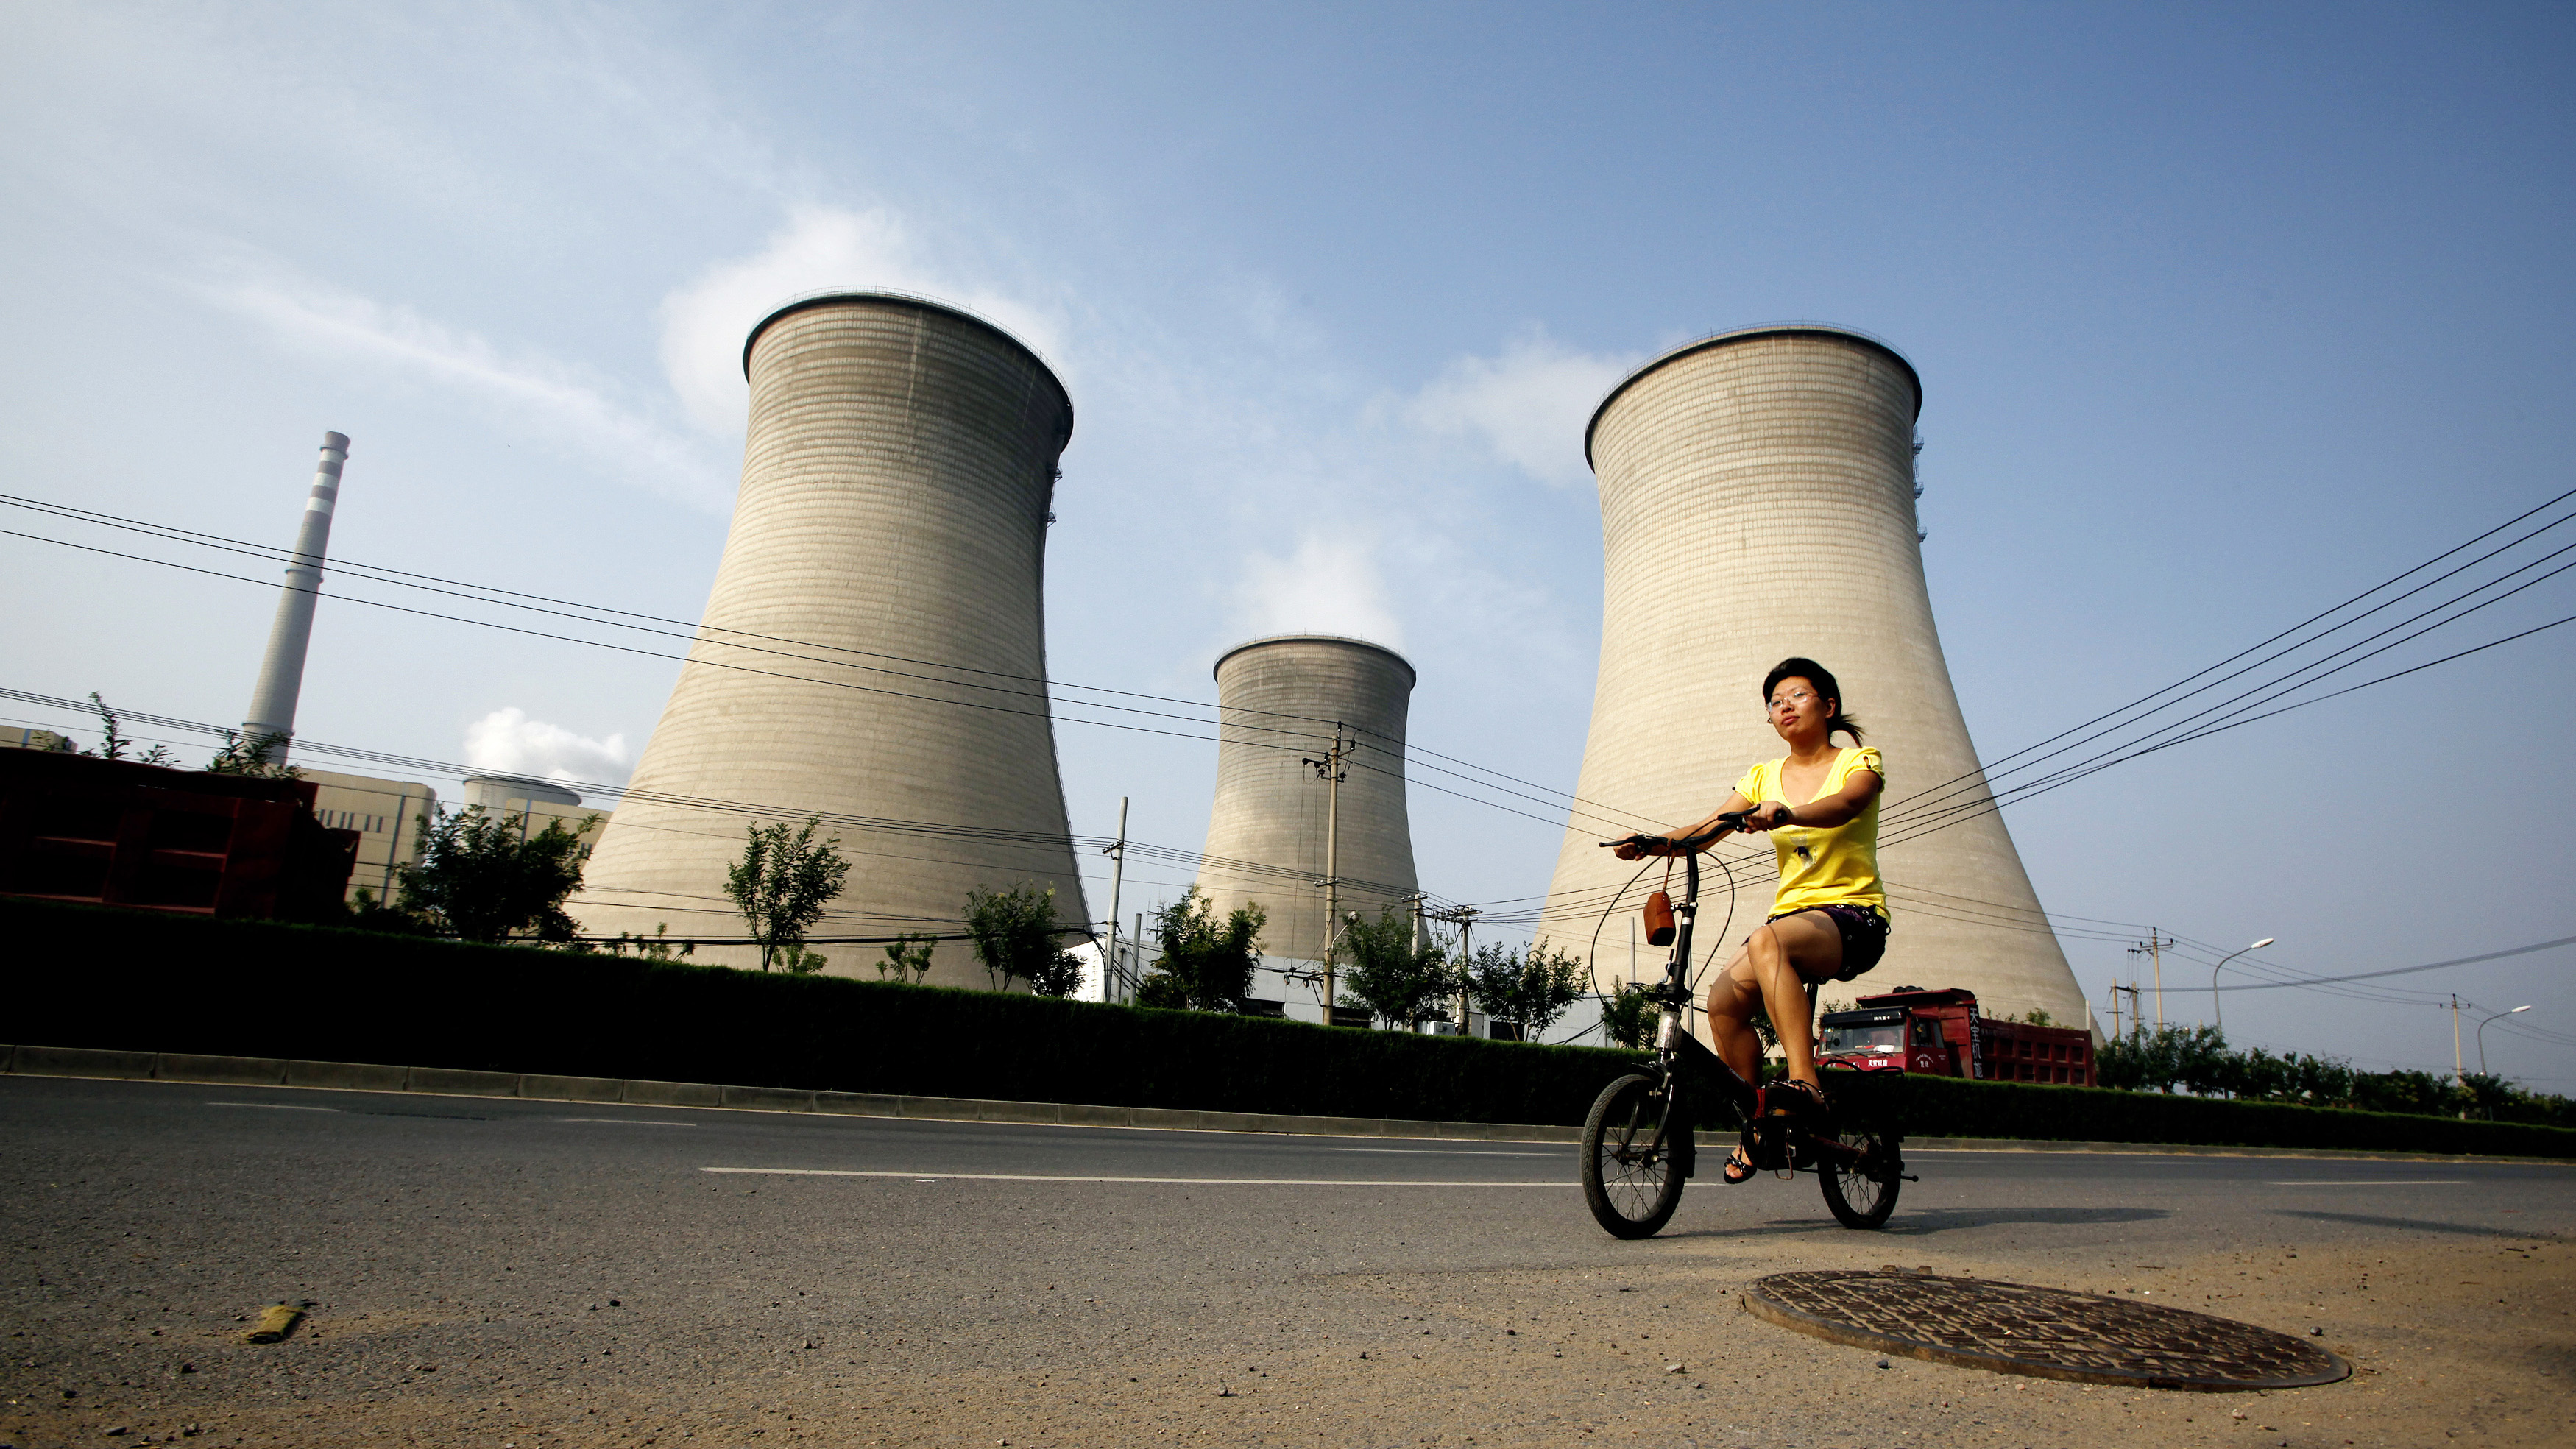 A woman rides her bicycle along a road past a coal-burning power station in Beijing August 12, 2010. China's plans to launch a series of pilot carbon trading projects starting next year underscores its need to curb its soaring greenhouse gas emissions -- now believed to be the world's largest. To match Analysis CHINA-CARBON/ REUTERS/David Gray  (CHINA - Tags: ENERGY ENVIRONMENT SOCIETY IMAGES OF THE DAY) - RTR2H9TO